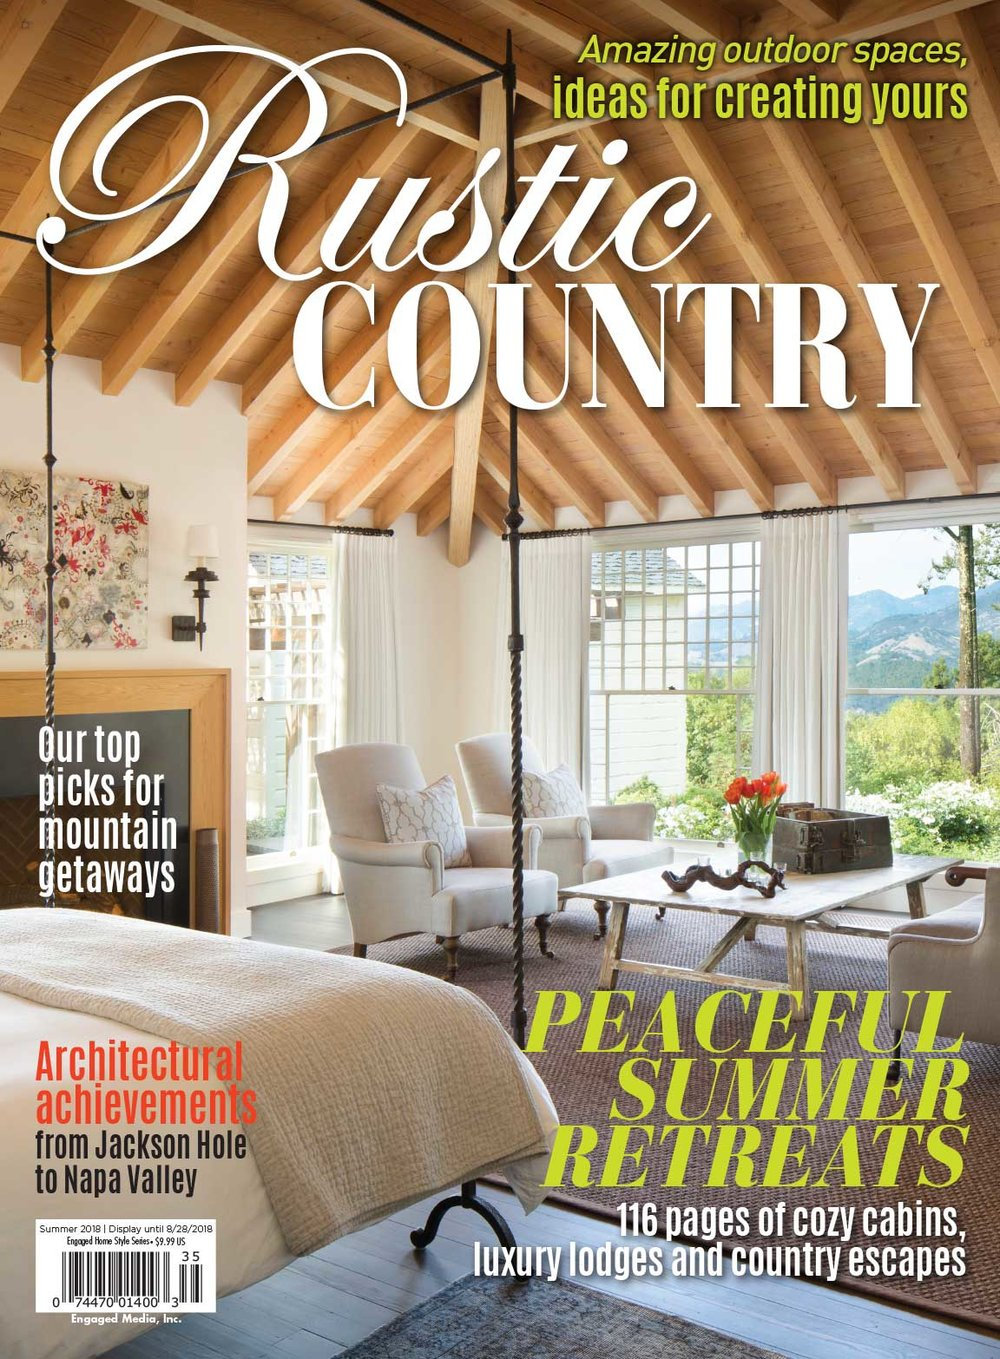 rustic-country-cover.jpg